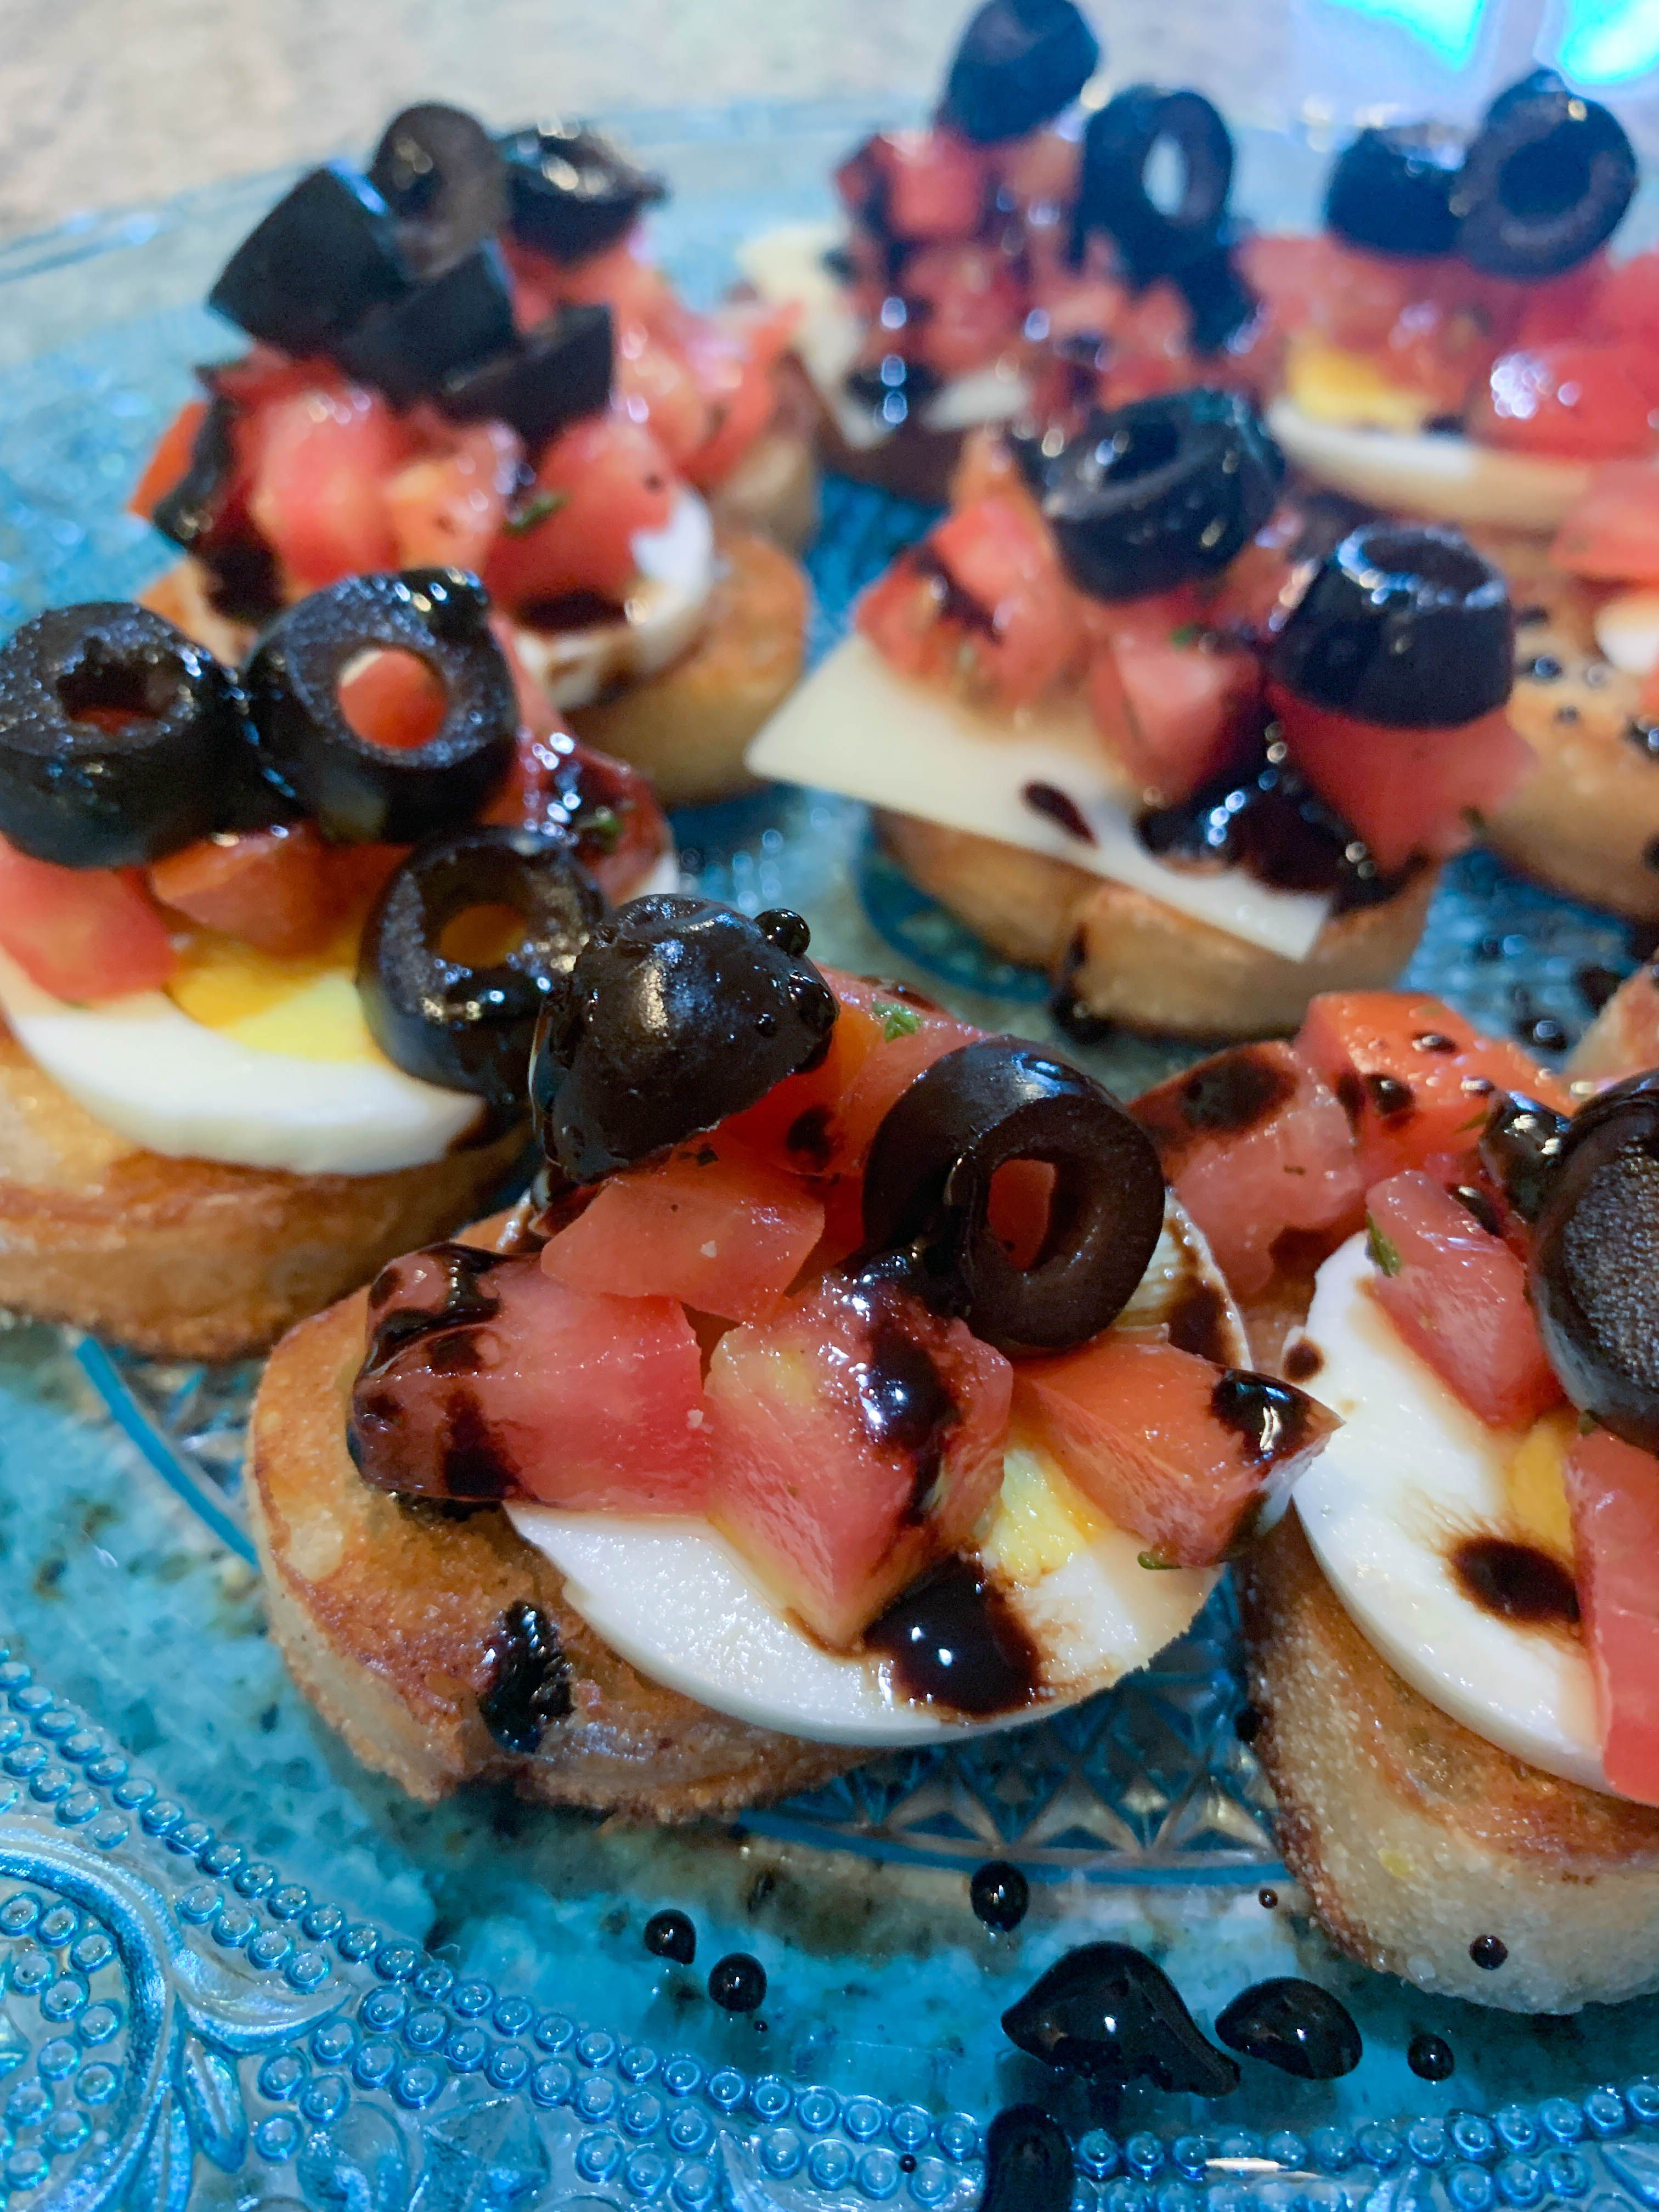 Bruschetta Canape's with Balsamic Glaze - Diaries of a Home Cook